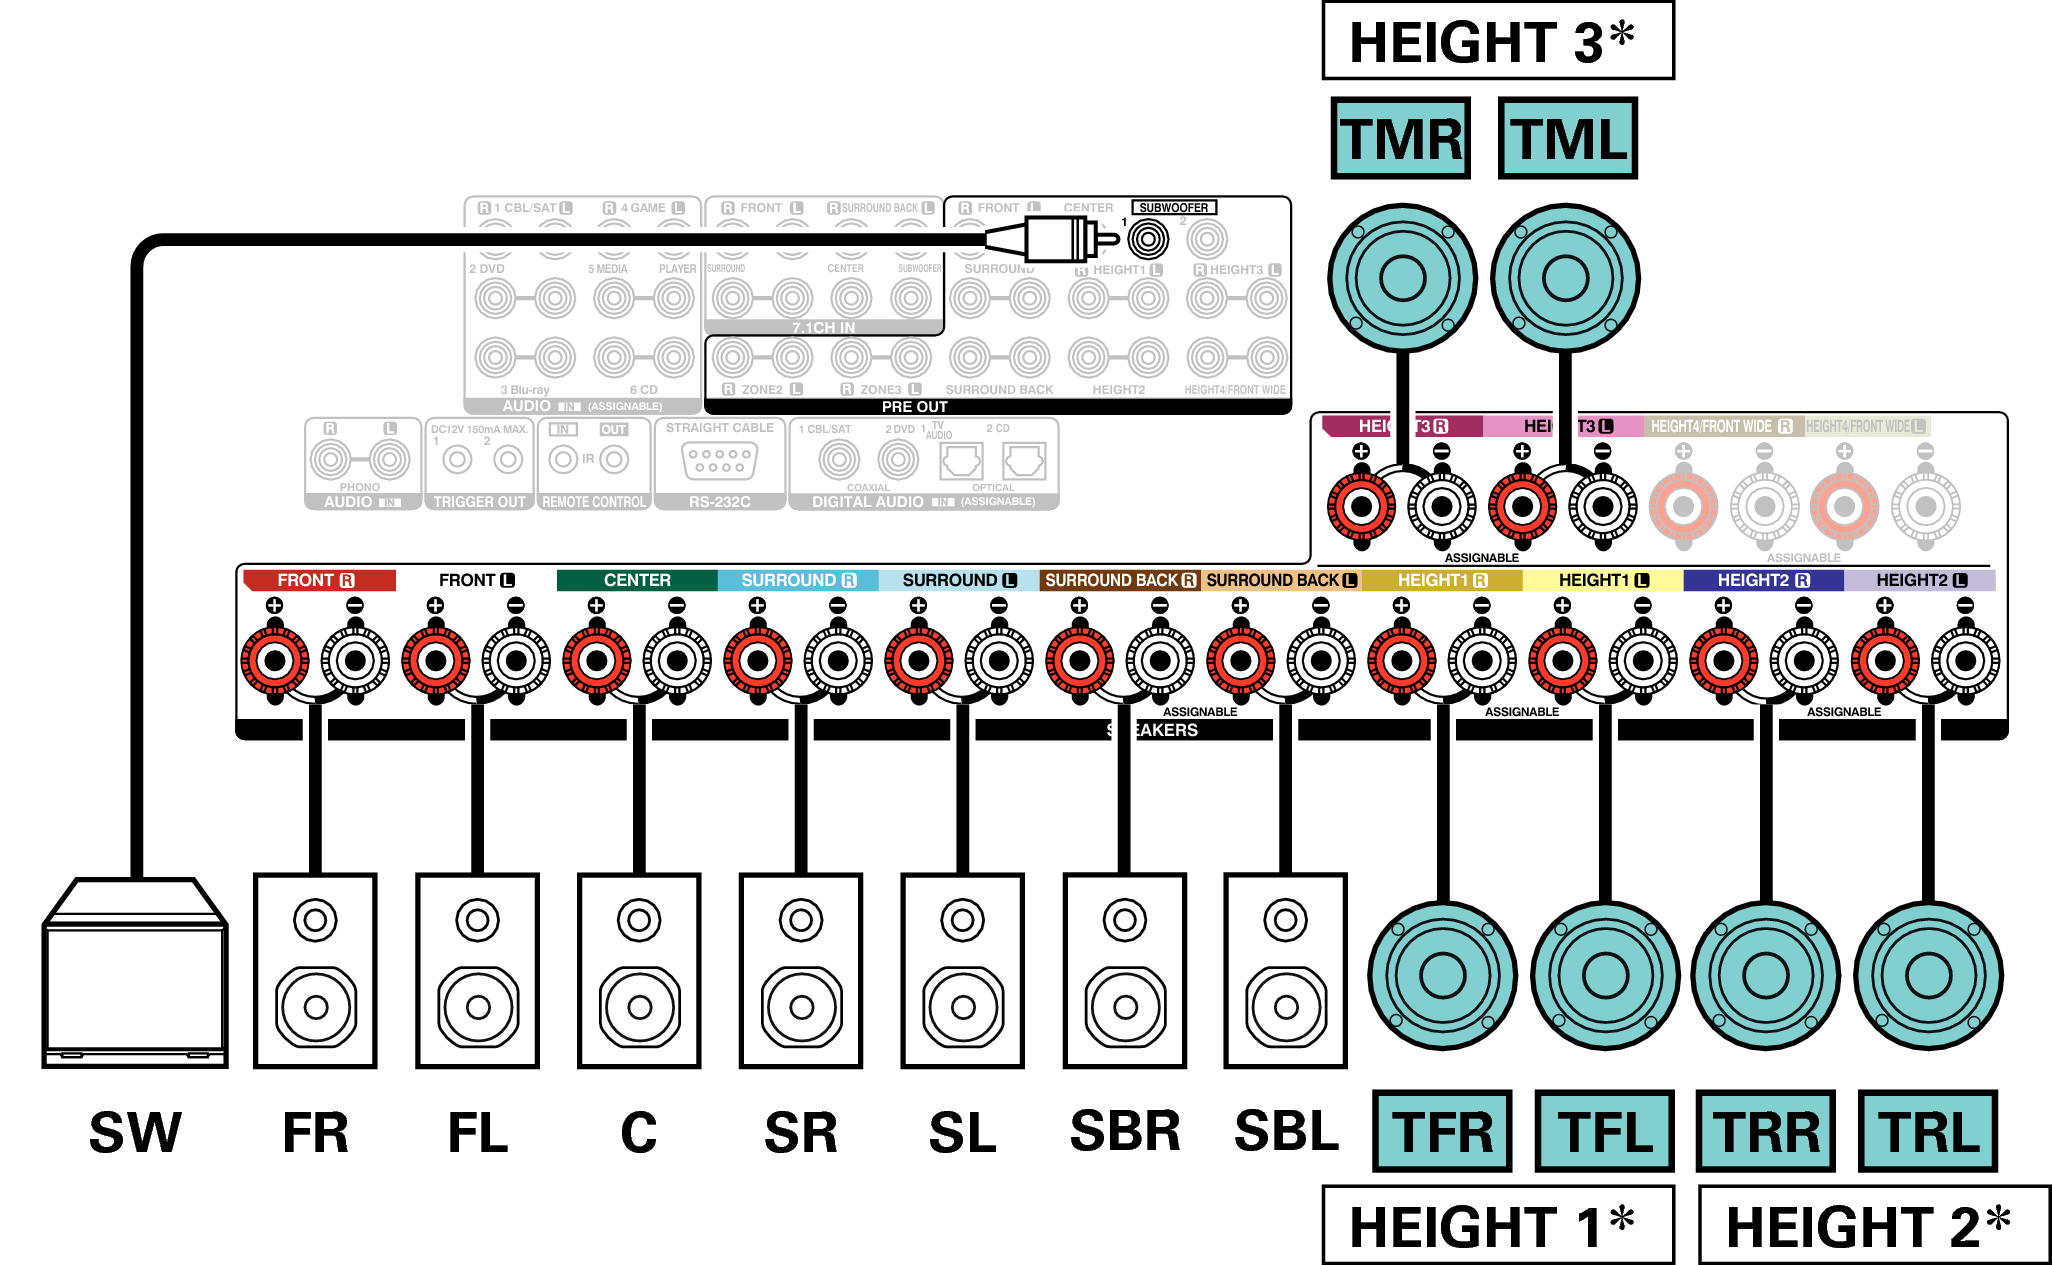 Connecting 13 1-channel speakers AVR-X8500H